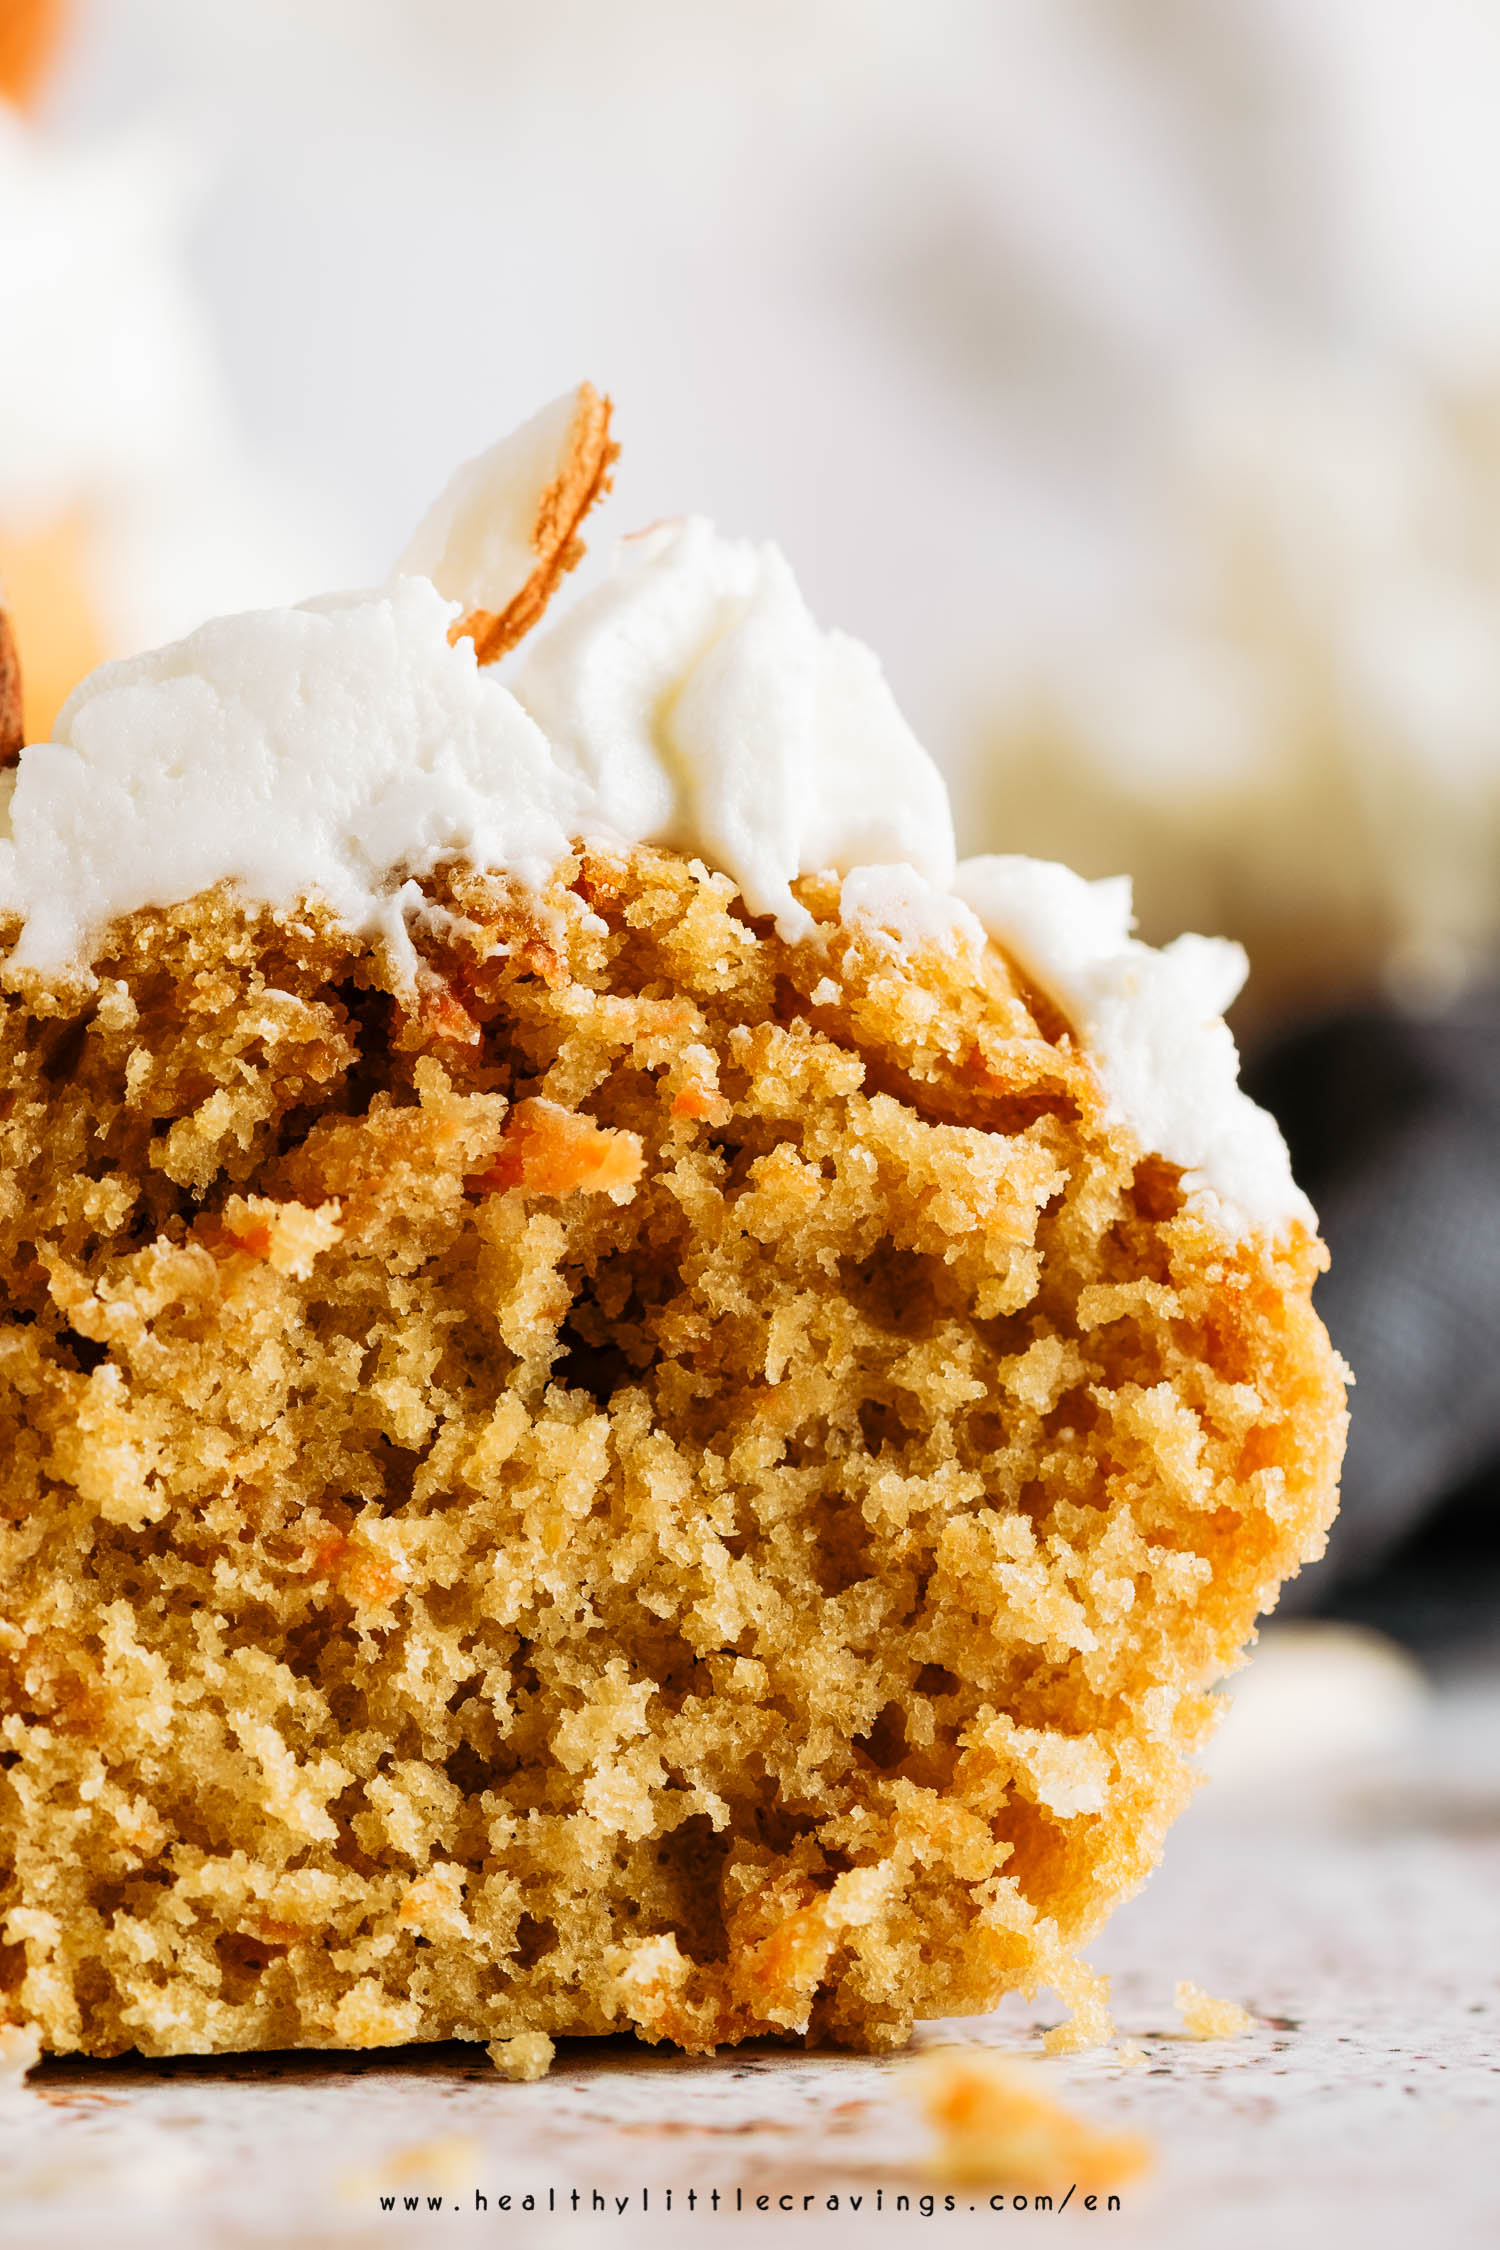 The texture of my easy healthy carrot cake cupcakes